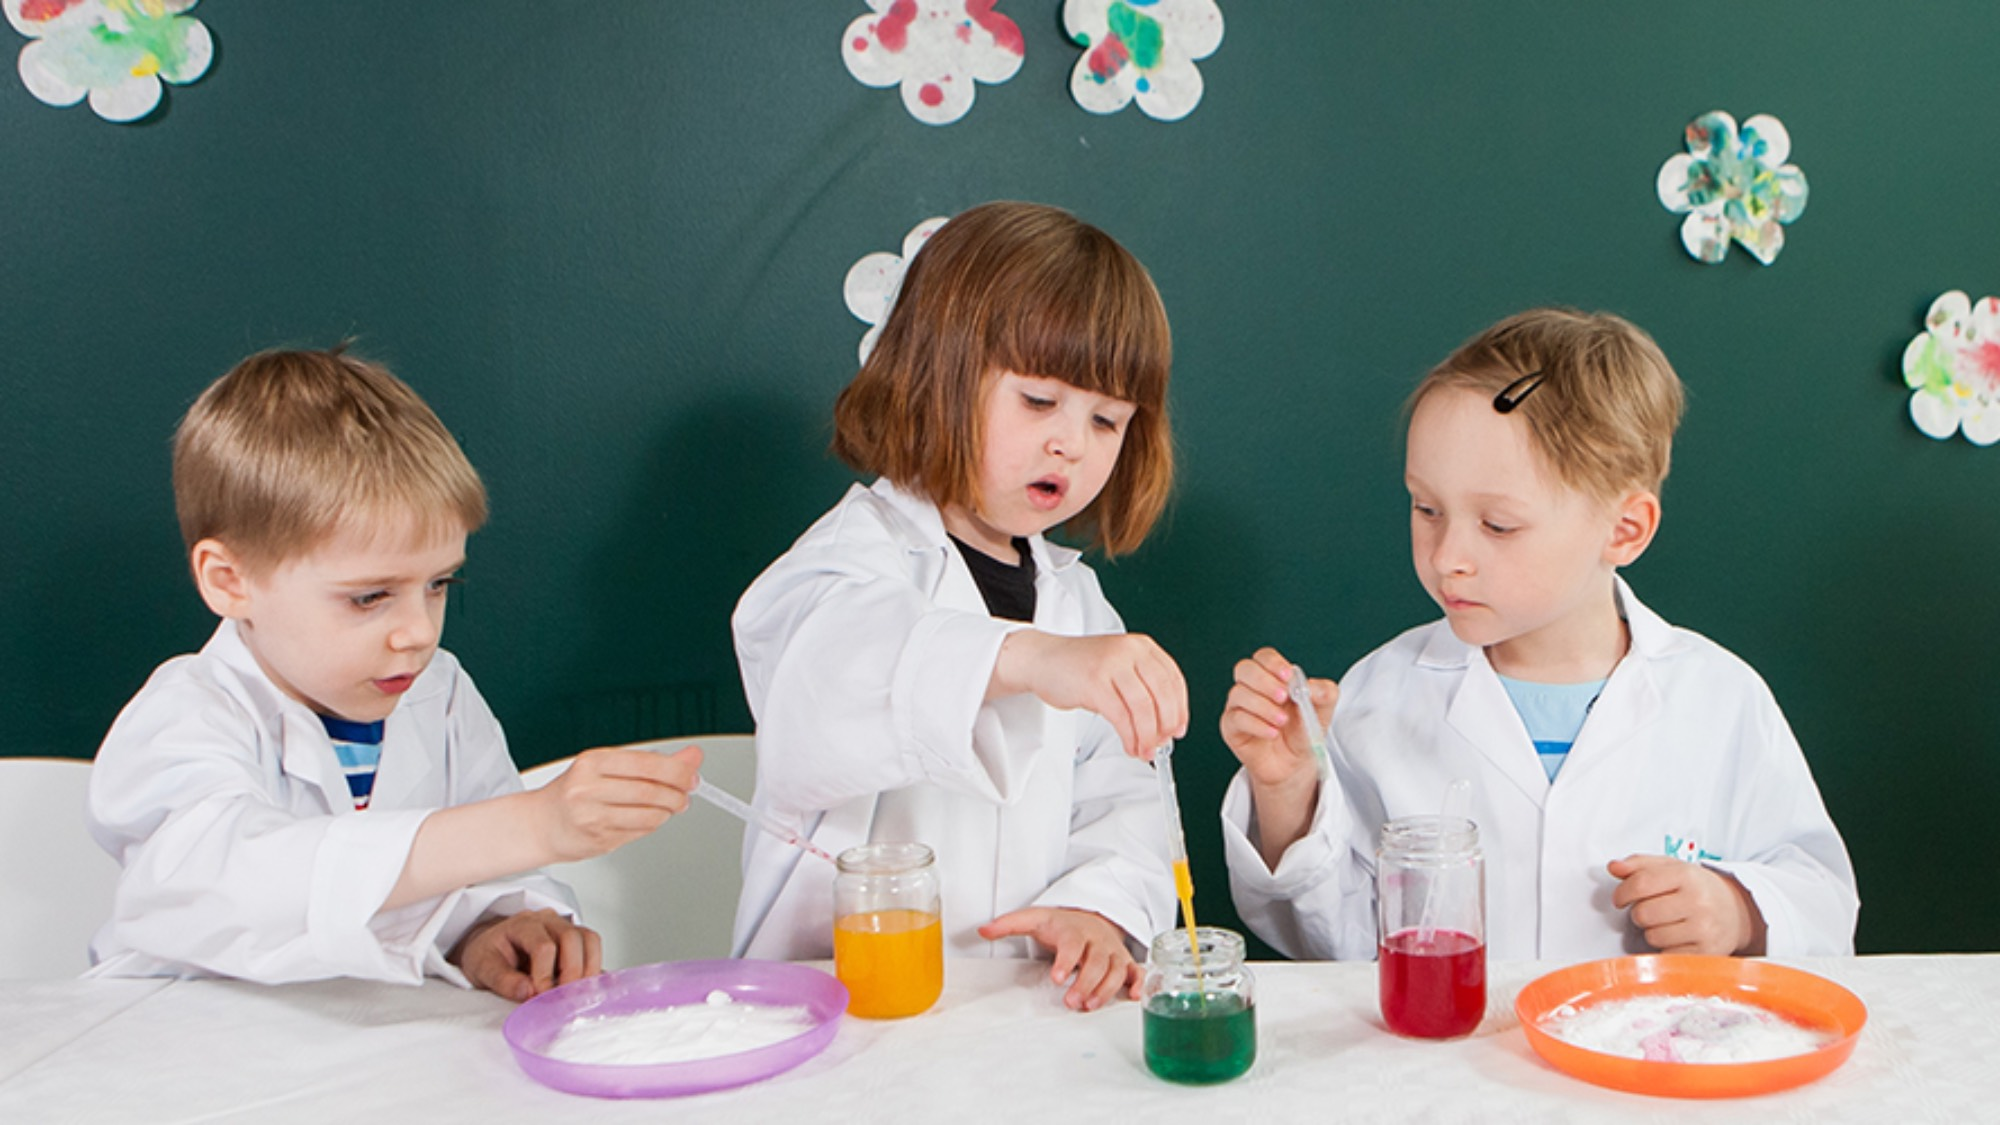 Kids in science coats doing expermients